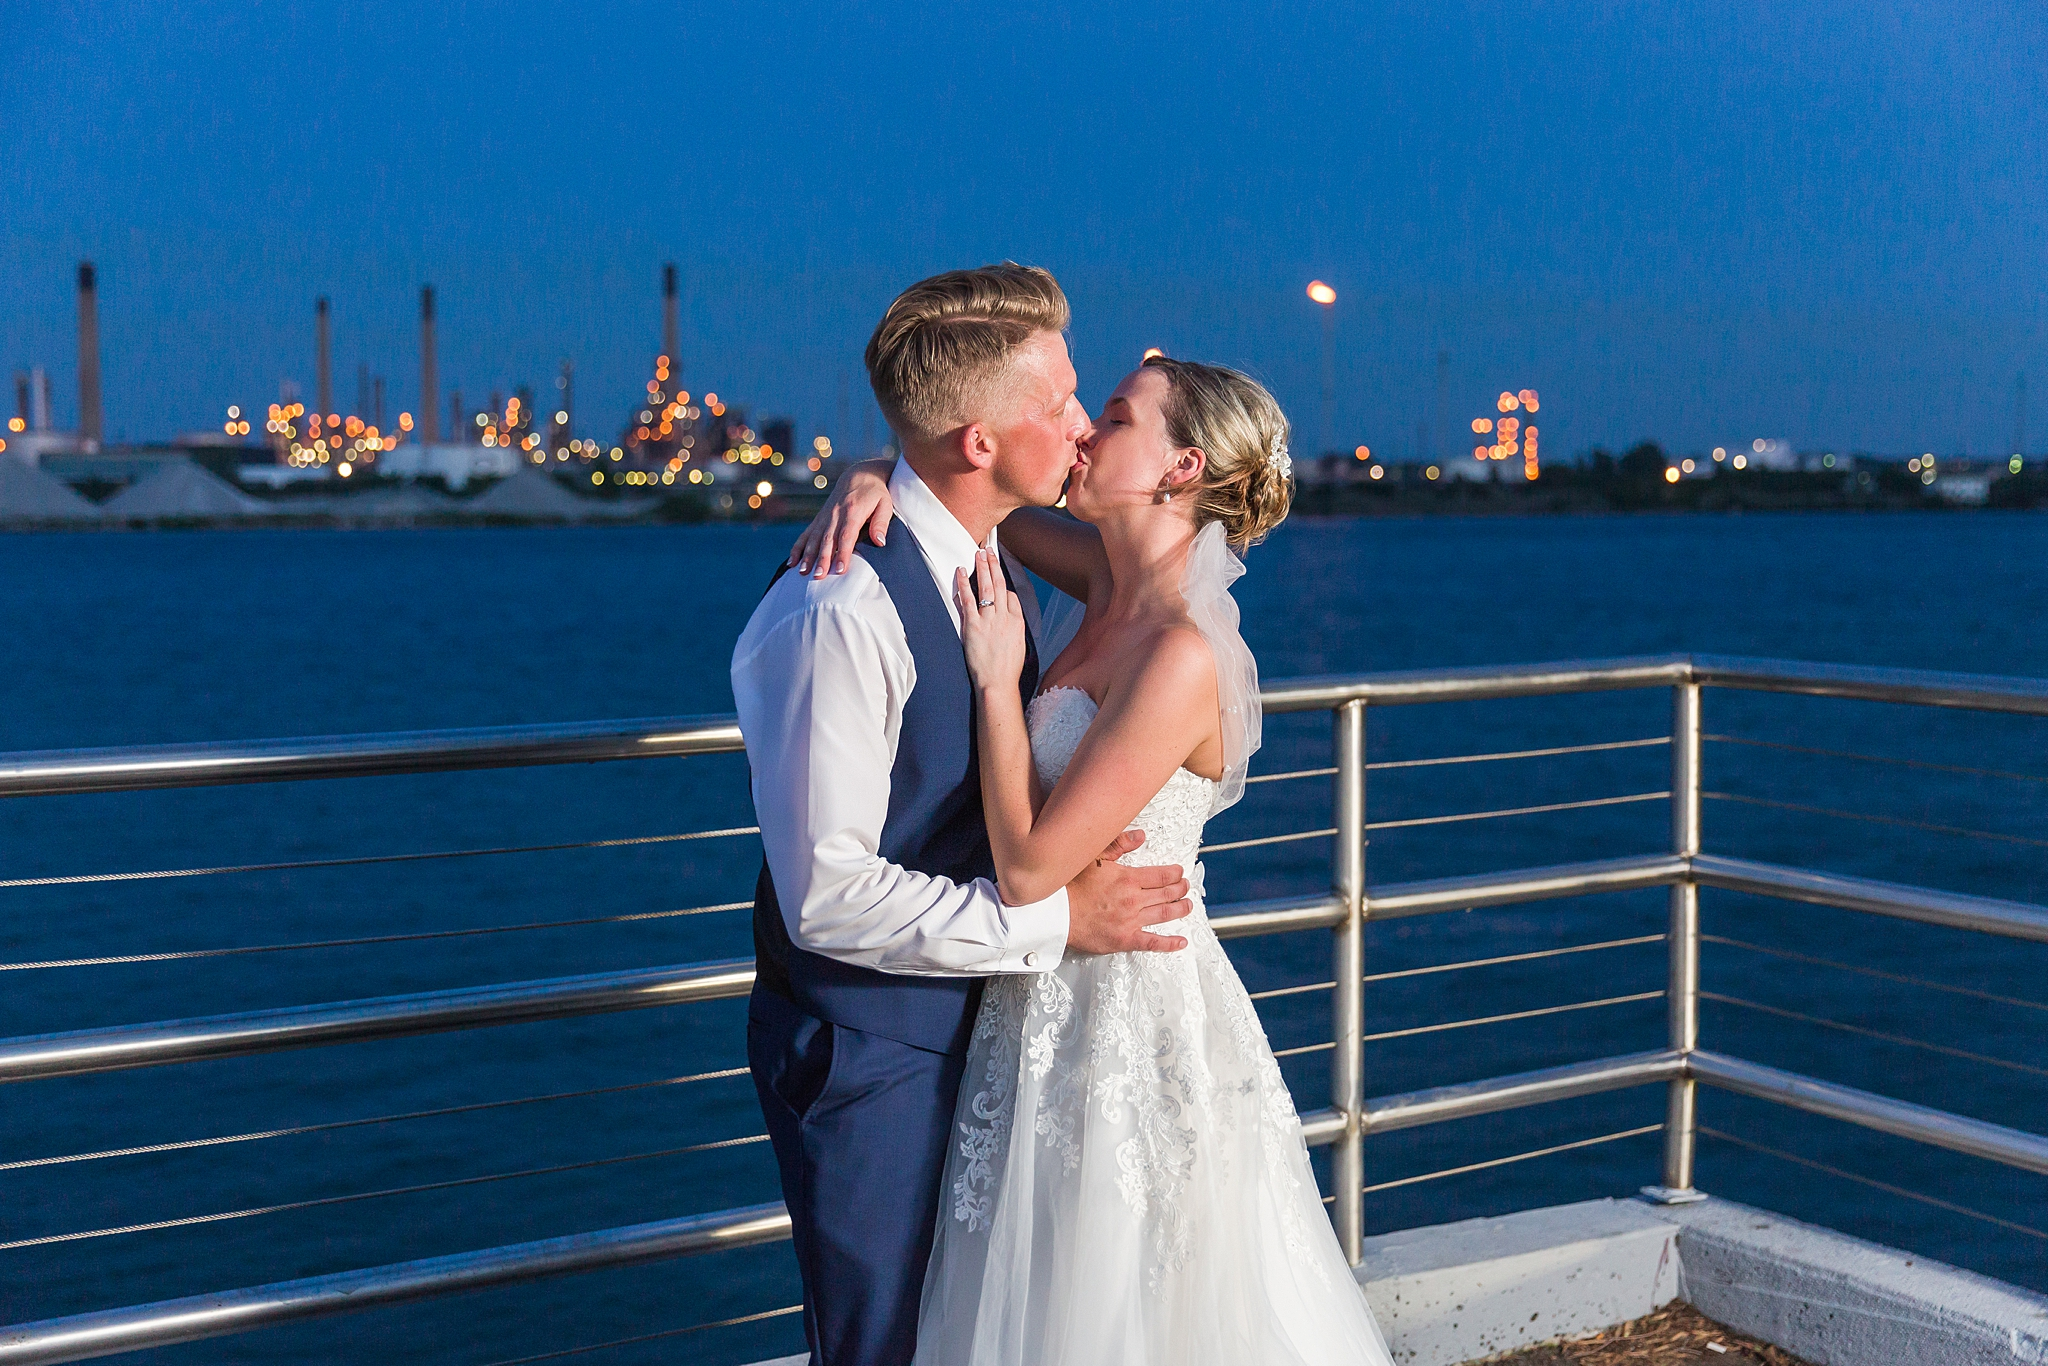 joyful-romantic-modern-laid-back-wedding-photography-in-detroit-ann-arbor-northern-mi-and-chicago-by-courtney-carolyn-photography_0030.jpg